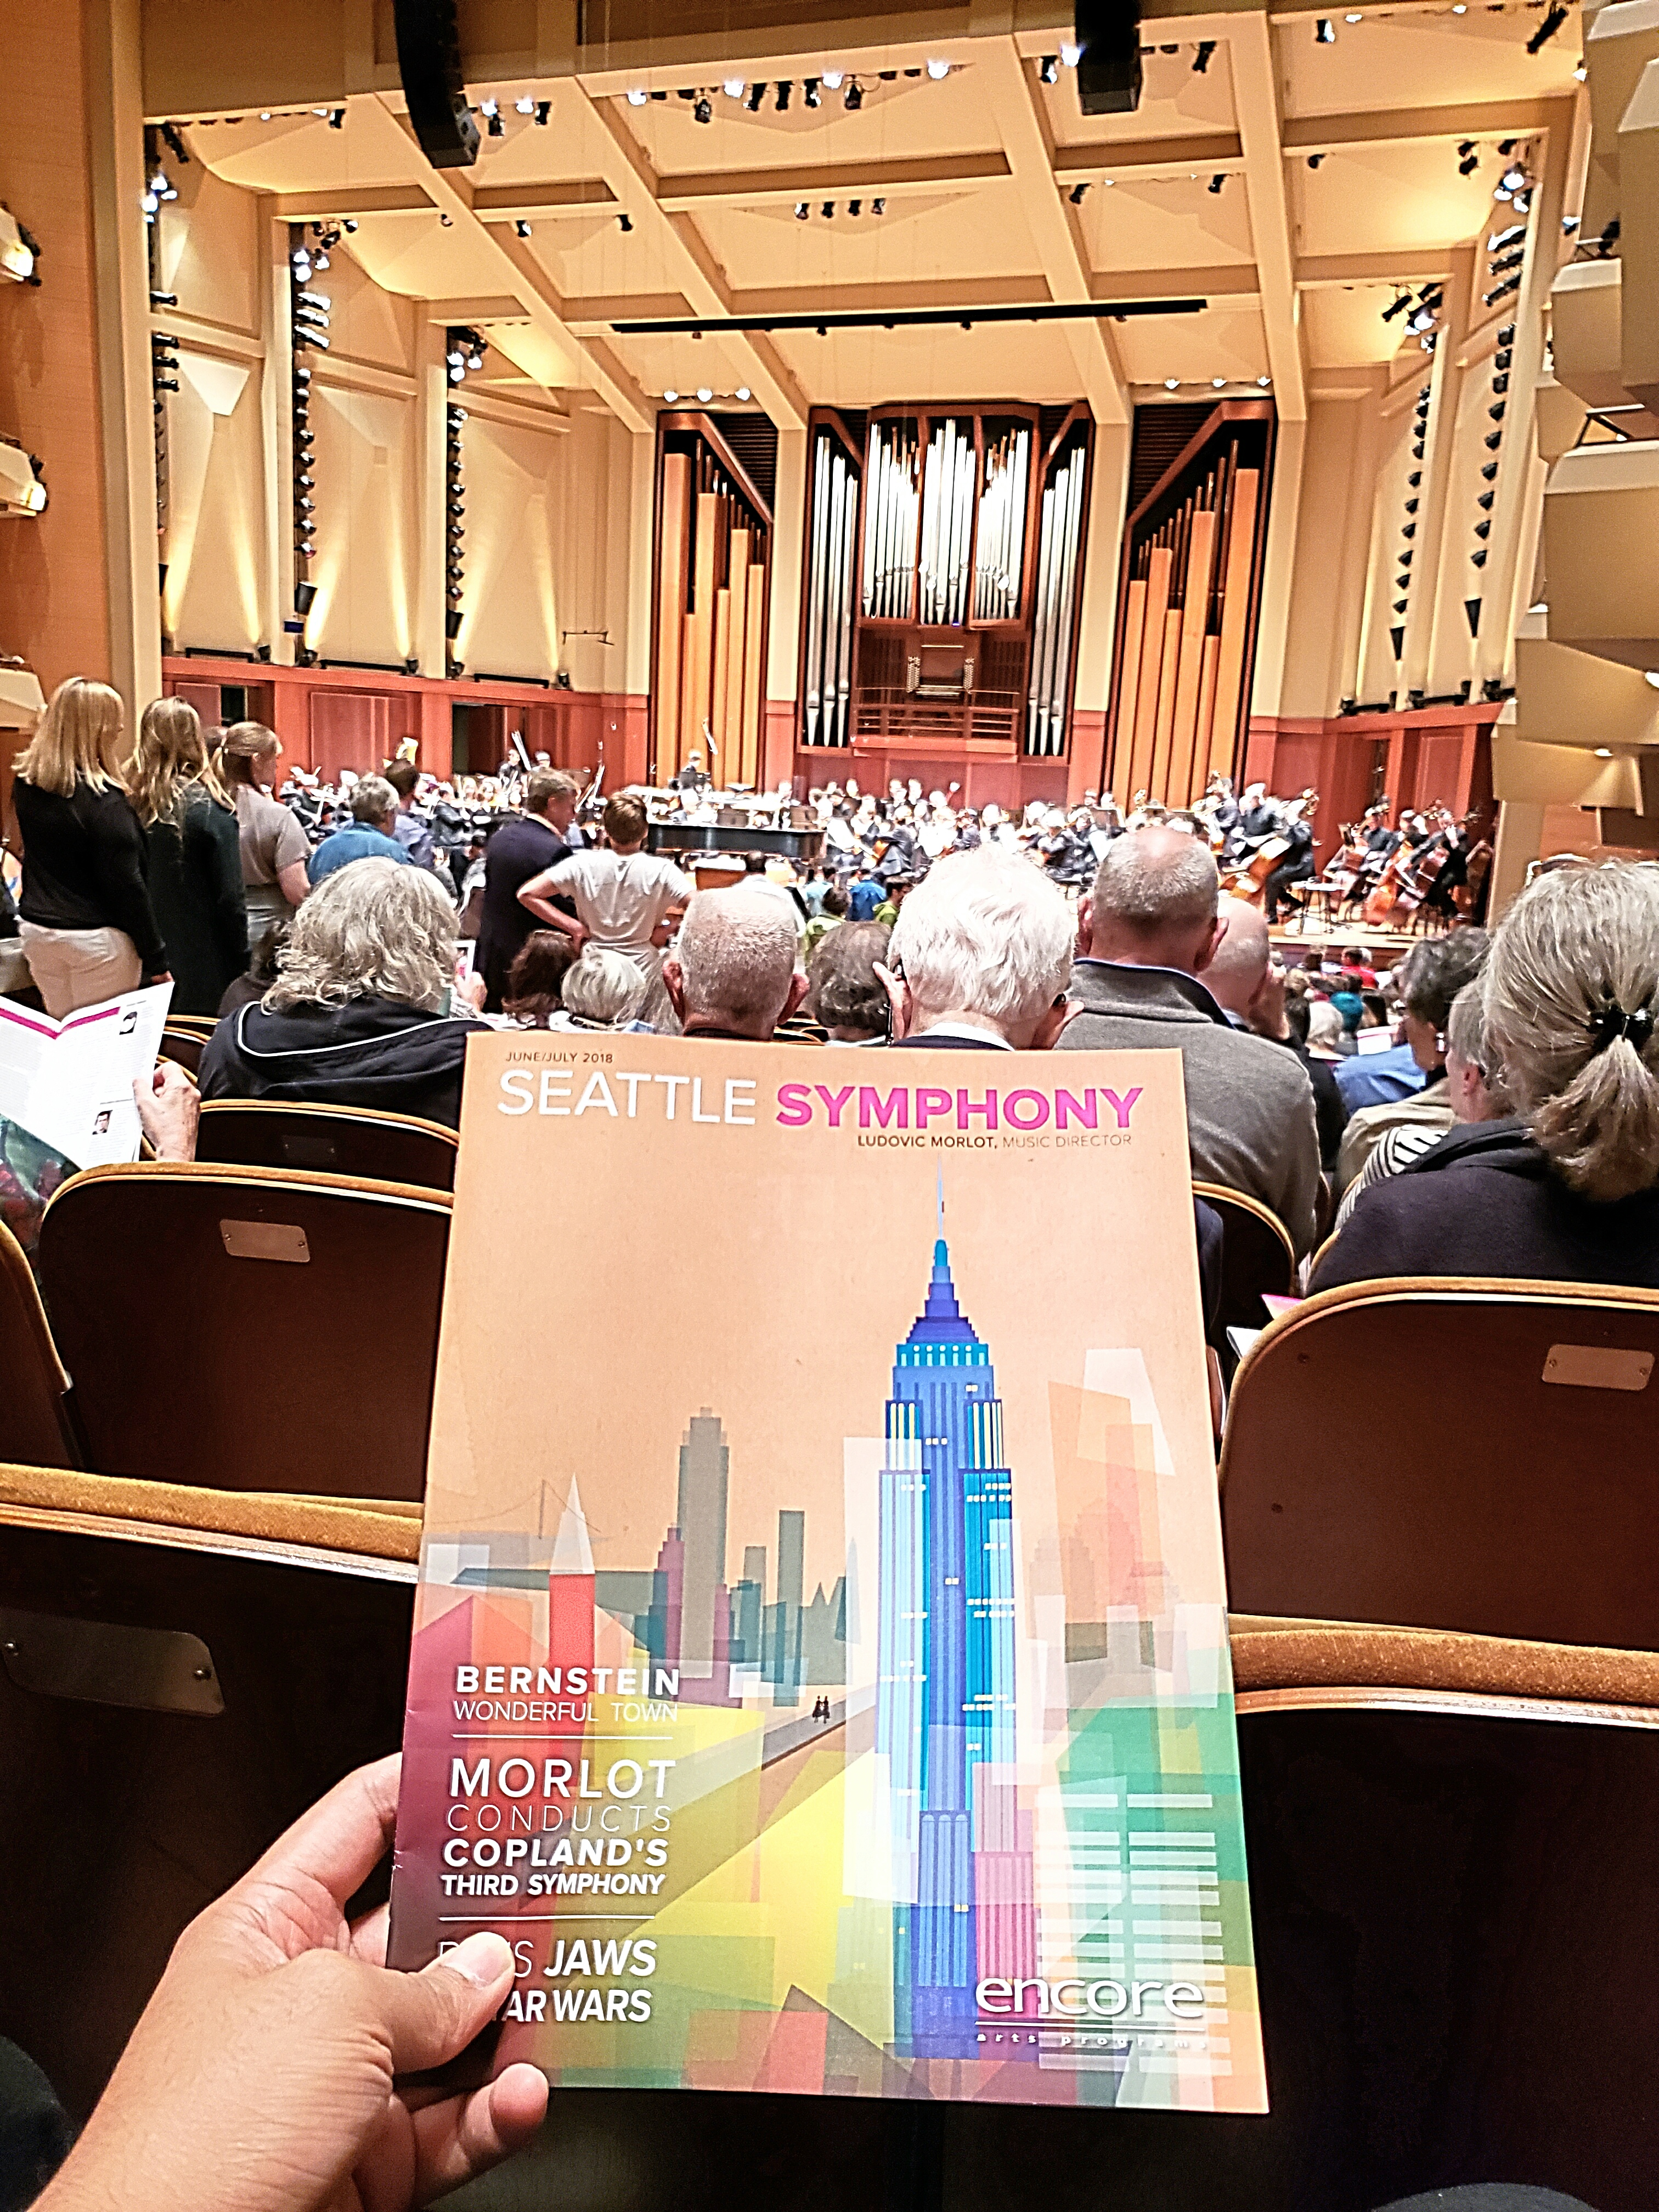 Attended the Seattle Symphony featuring music by Camille Saint-Saëns & Fredrick Chopin. 2nd time in my life @ the symphony. I must say, the audience is VERY gratuitous w/ applause & standing ovation than what I'm used to in musicals. Thanks for the tix Paul!